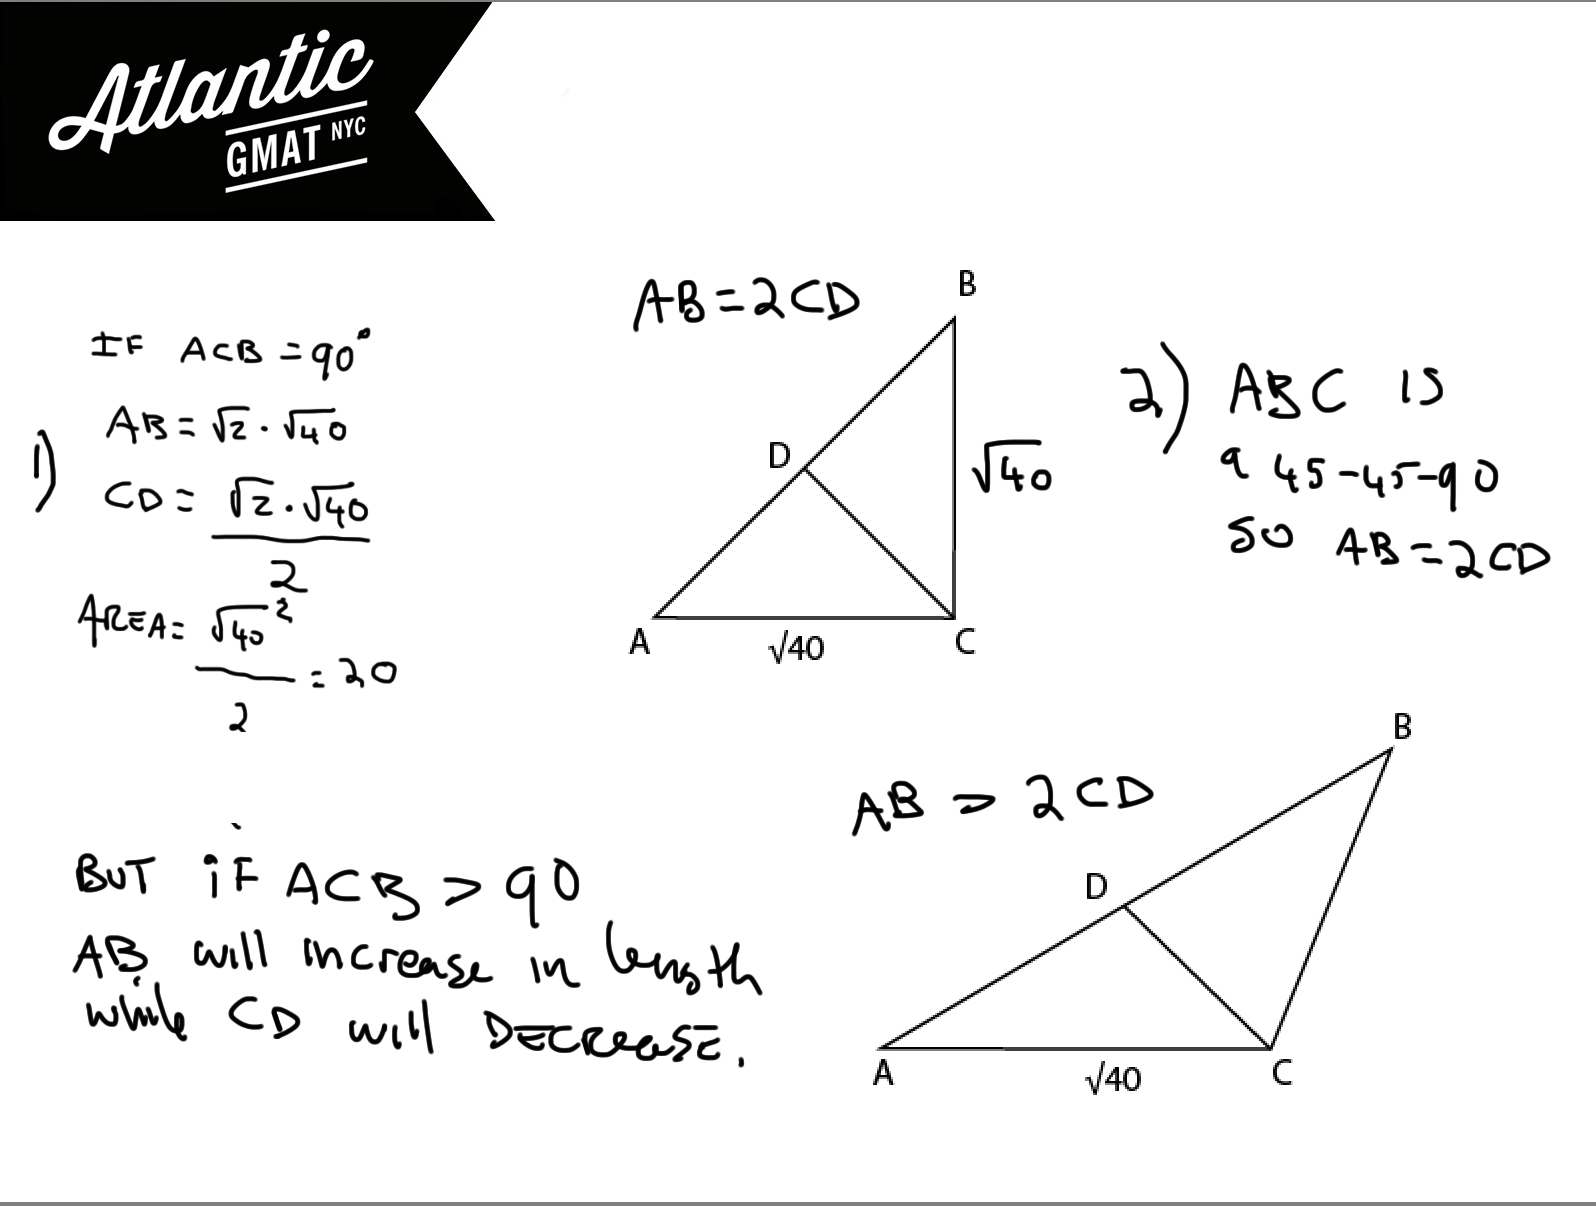 GMAT Question of the Day DS Geometry – 45 45 90 Triangle Worksheet